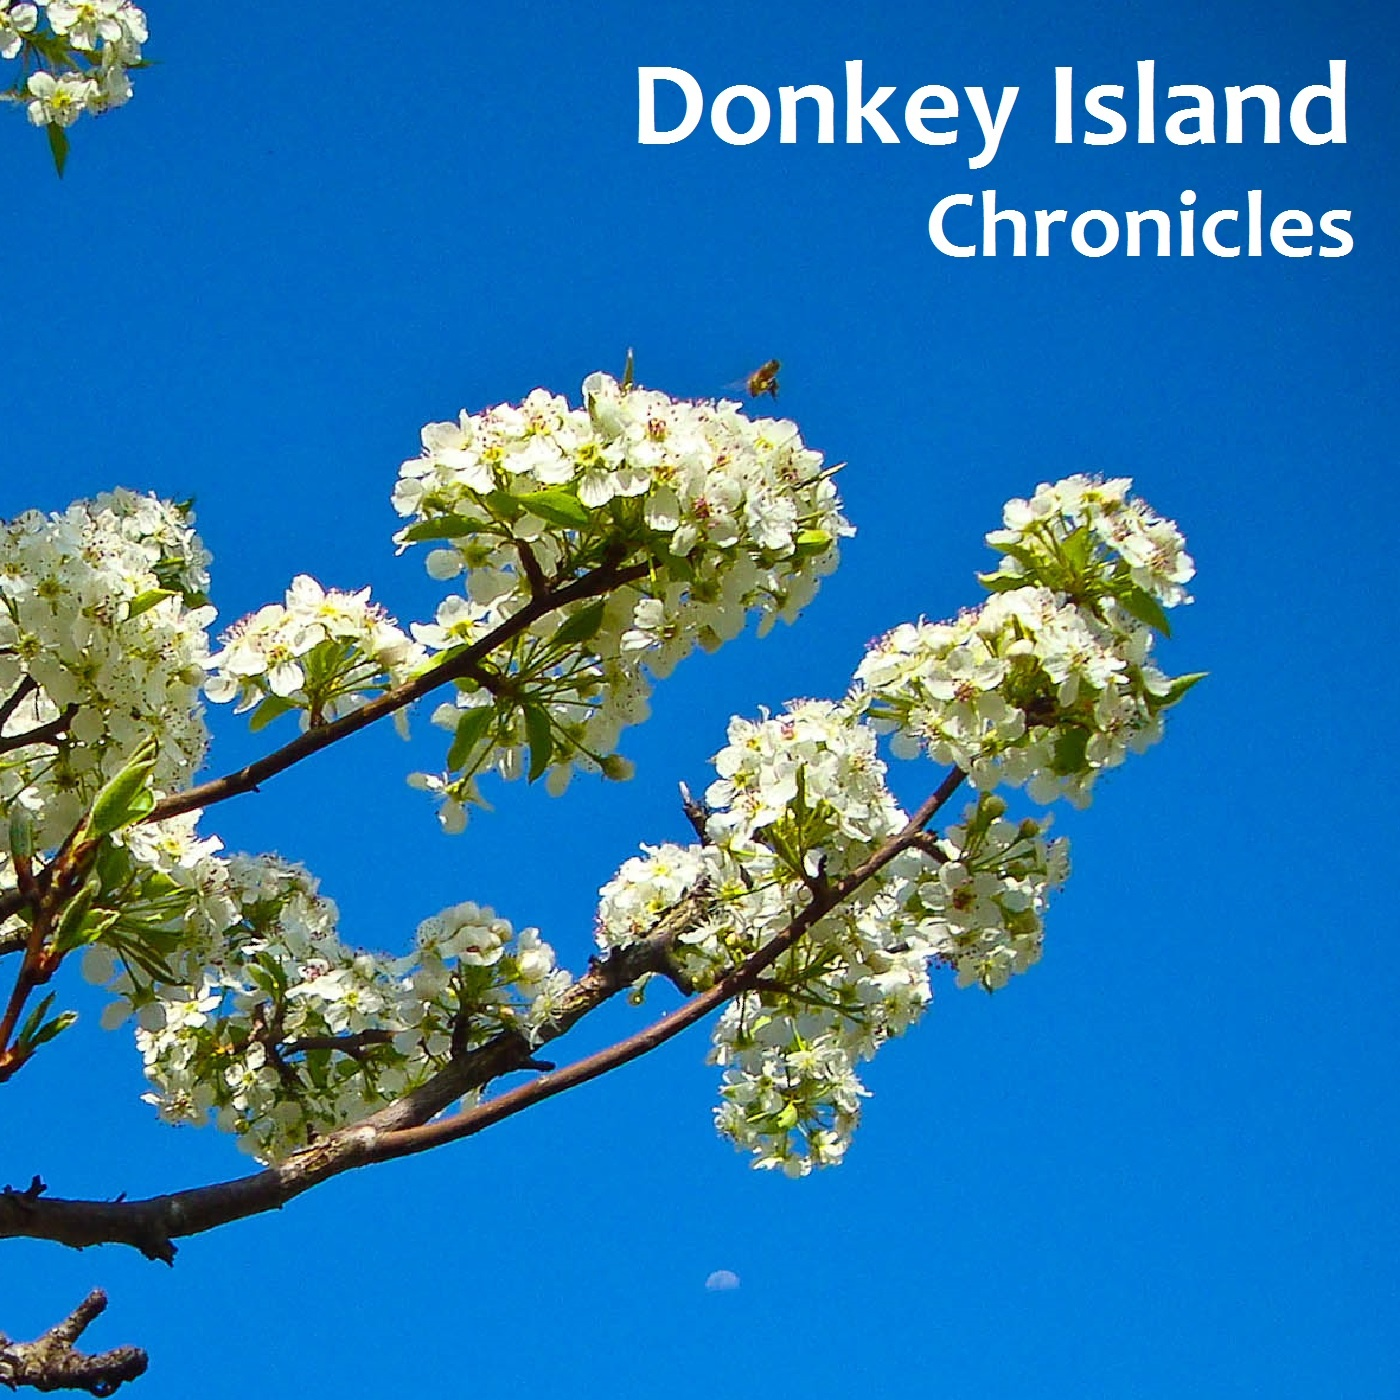 Donkey Island Chronicles